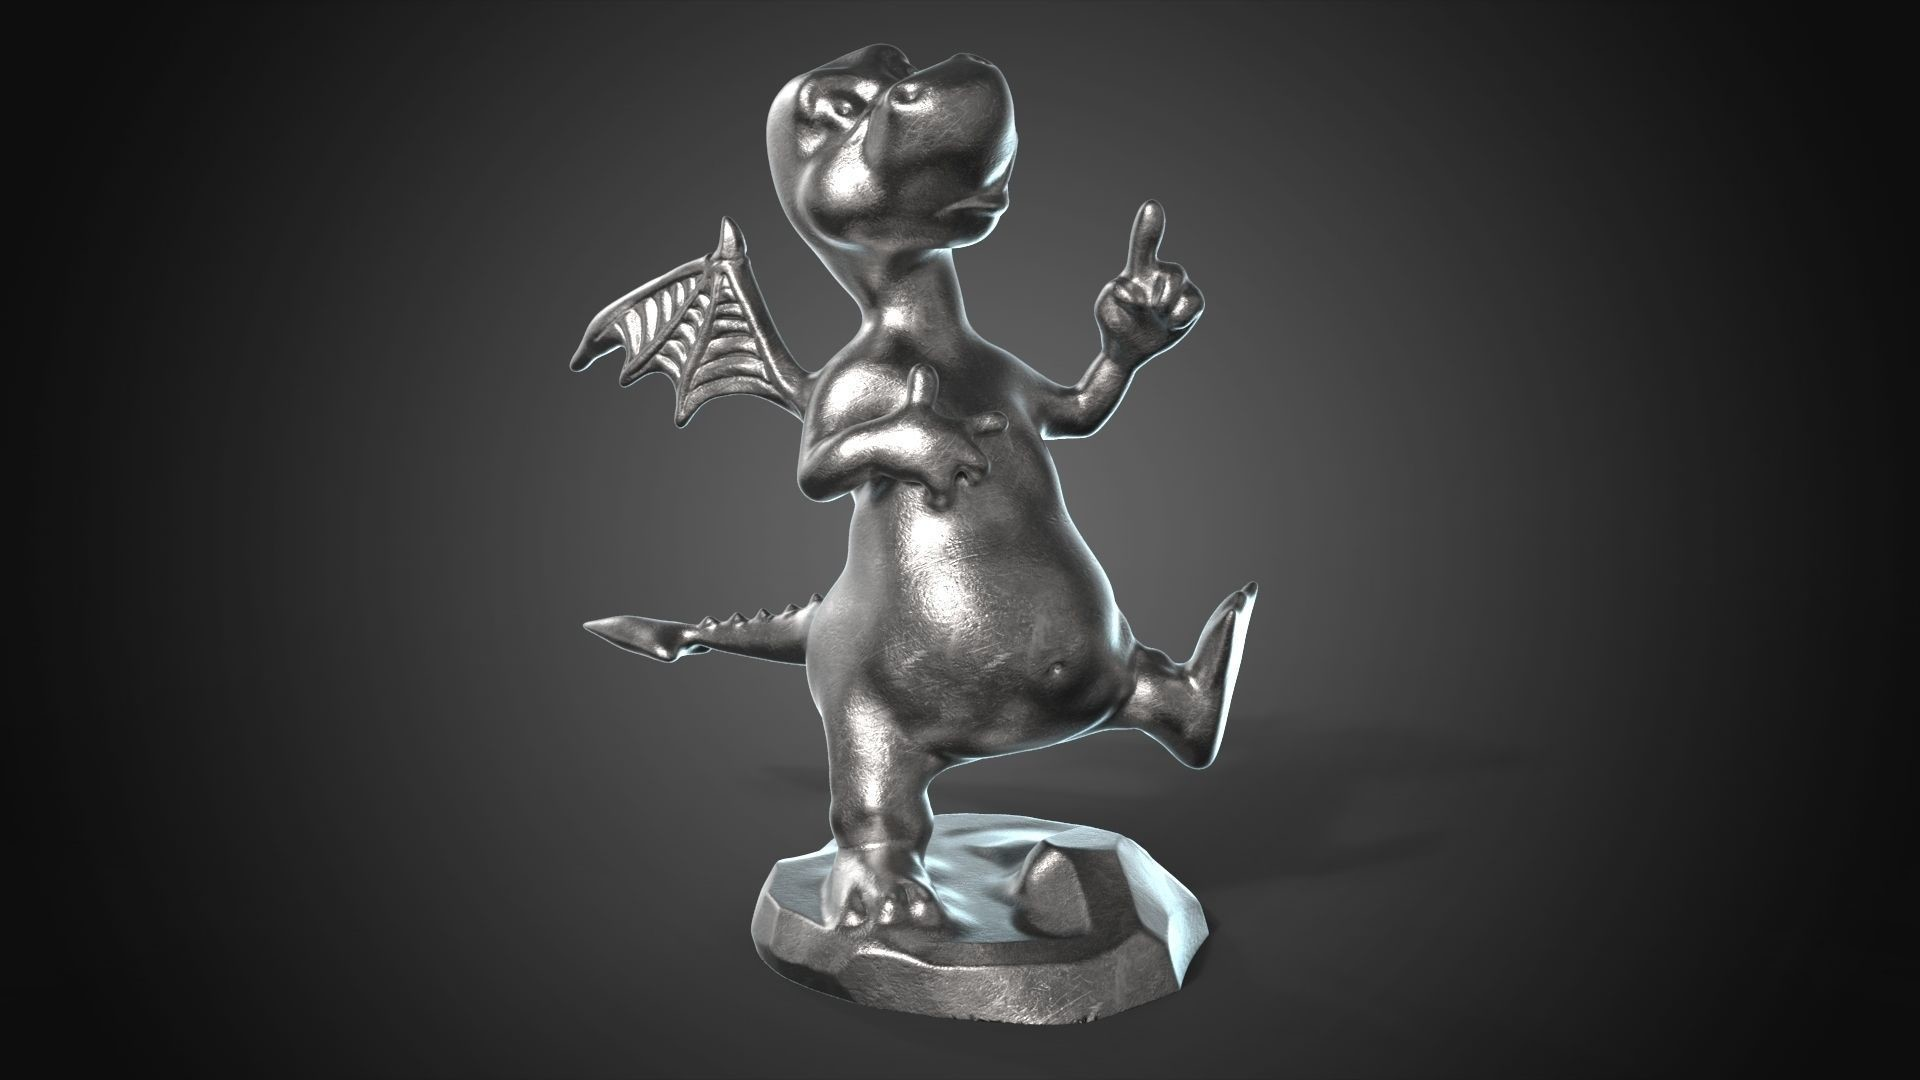 Andrew krivulya dragon for jewerly 3d print 30mm 3d model stl 642be6b3 3d6a 46b6 9912 776279c73ac1